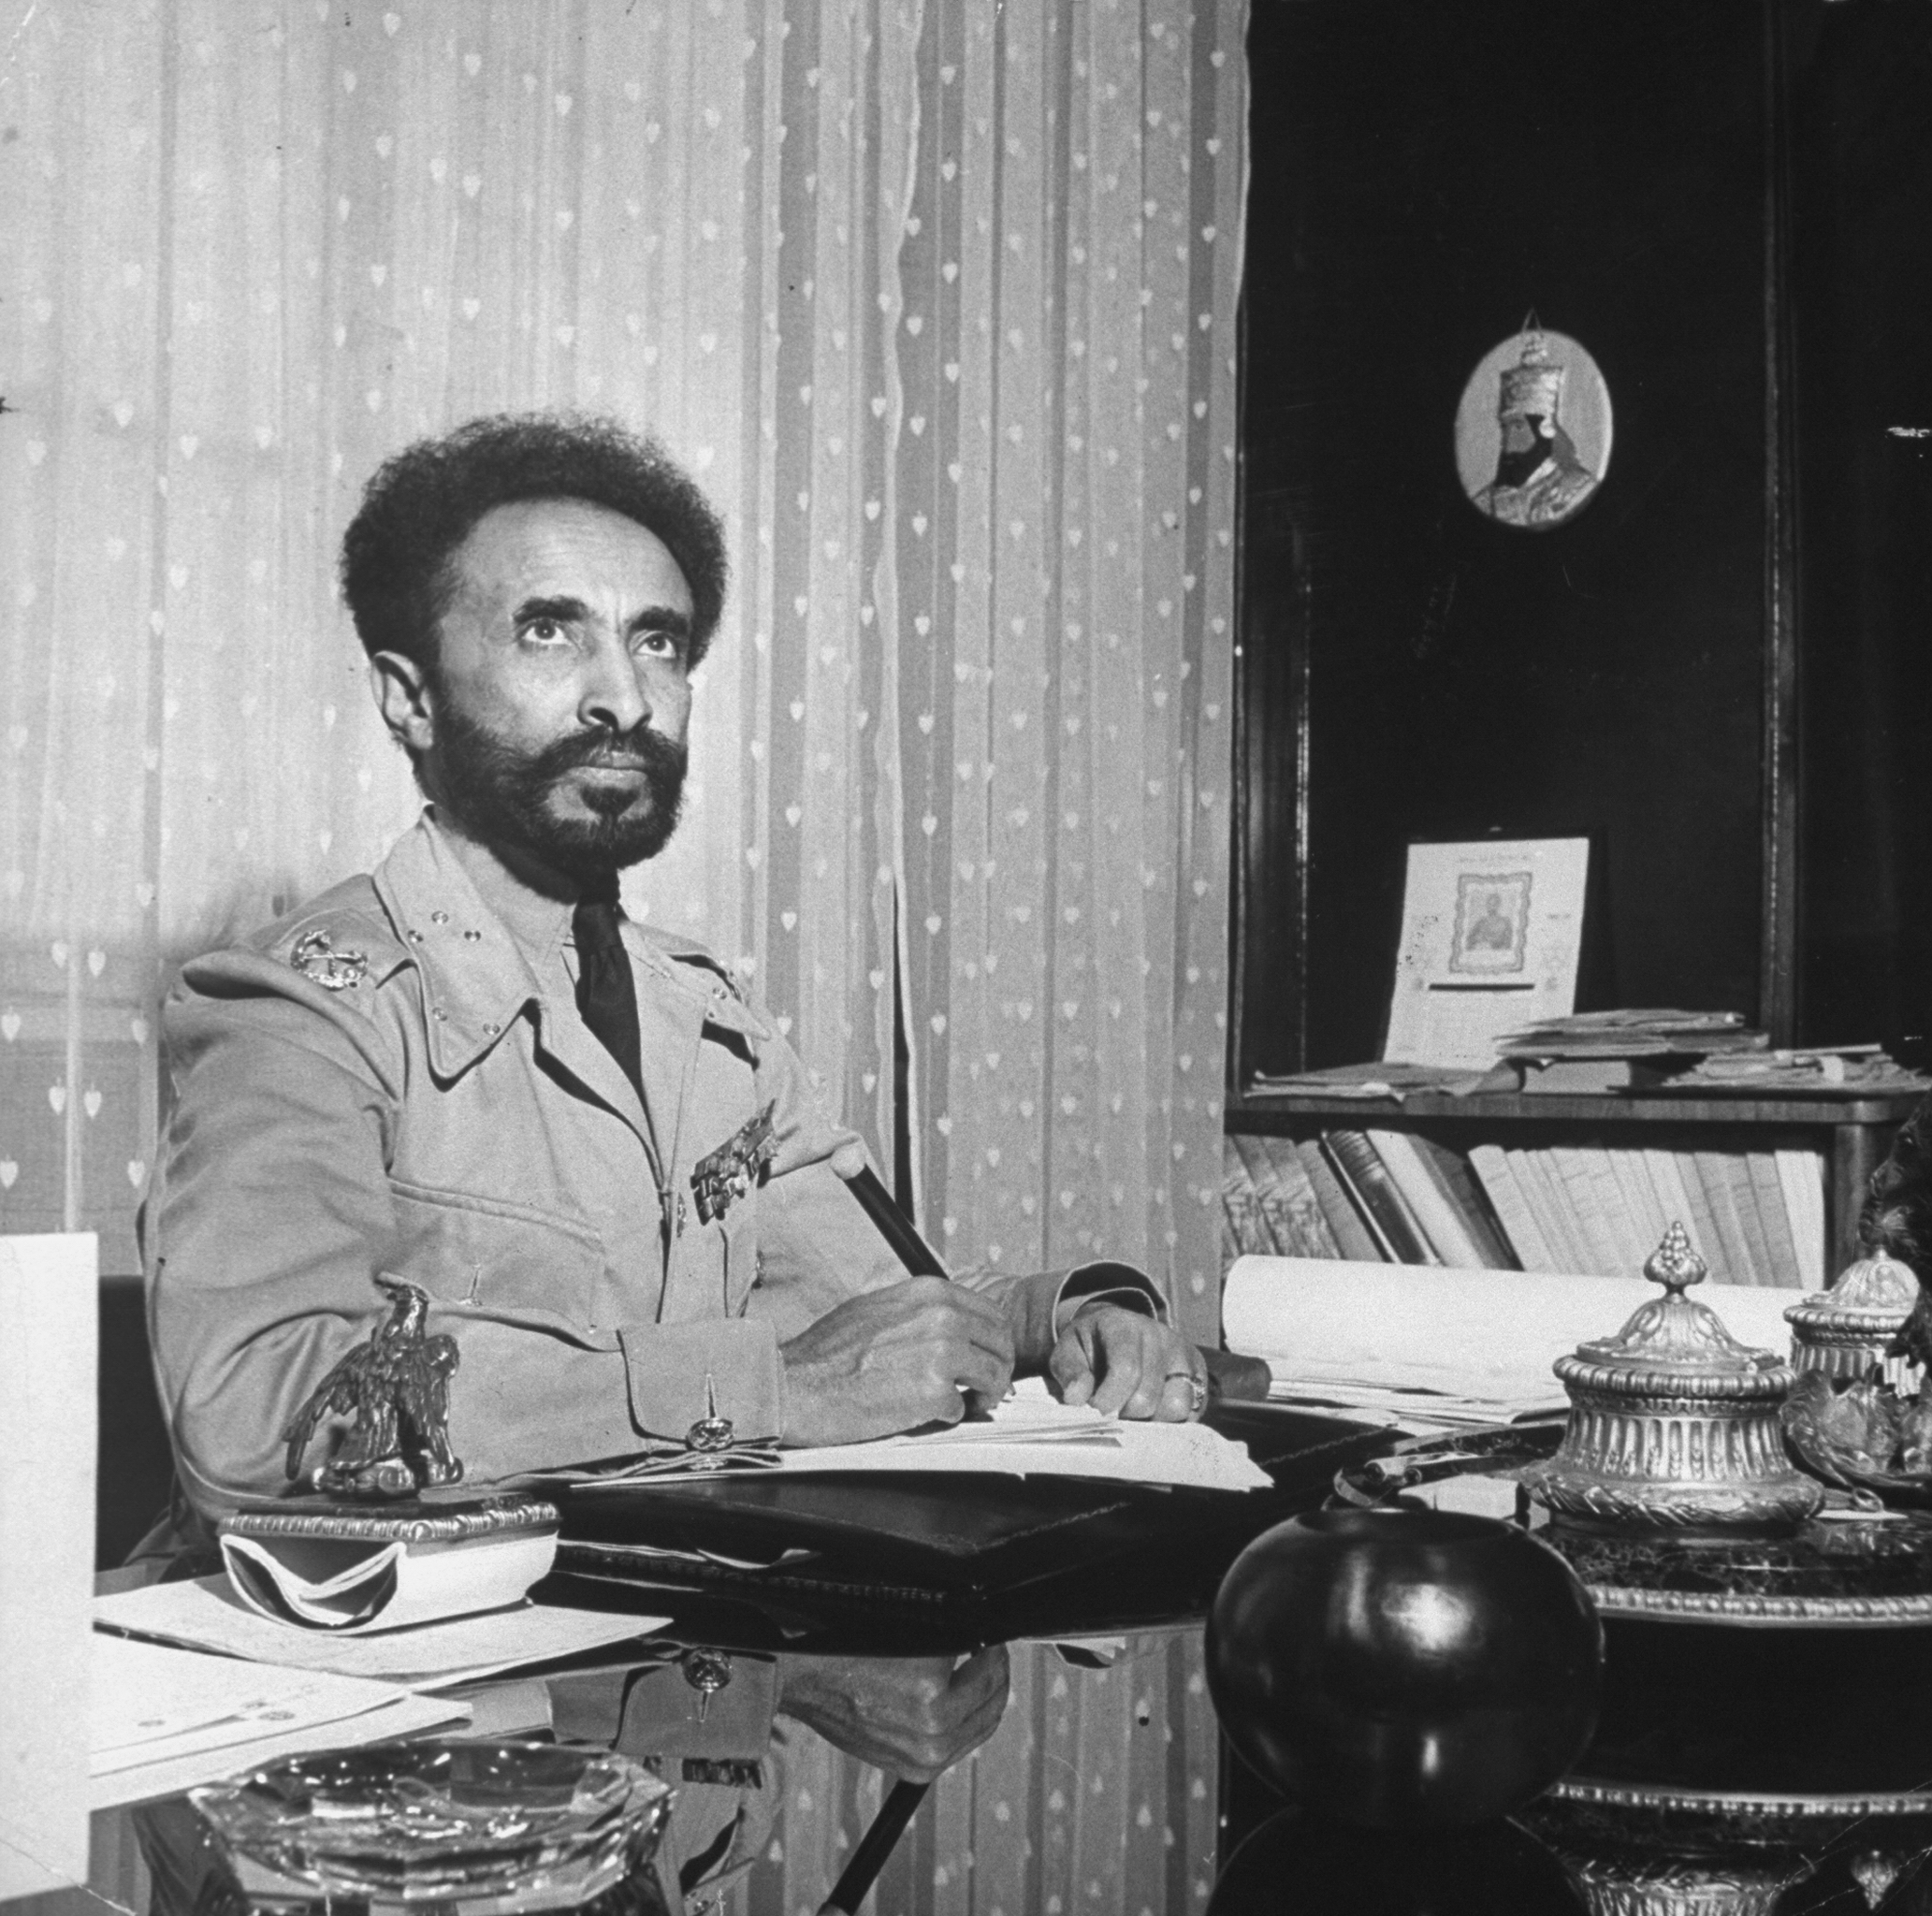 Above all, Haile Selassie has created a general, warm and blind sympathy for uncivilized Ethiopia throughout civilized Christendom. In the wake of the world's grandiose Depression, with millions of white men uncertain as to the benefits of civilization, 1935 produced a peculiar Spirit of the Year in which it was felt to be a crying shame that the Machine Age seemed about to intrude upon Africa's last free, unscathed and simple people. They were ipso facto Noble Savages, and the noblest Ethiopian of them all naturally emerged as Man of the Year.  —